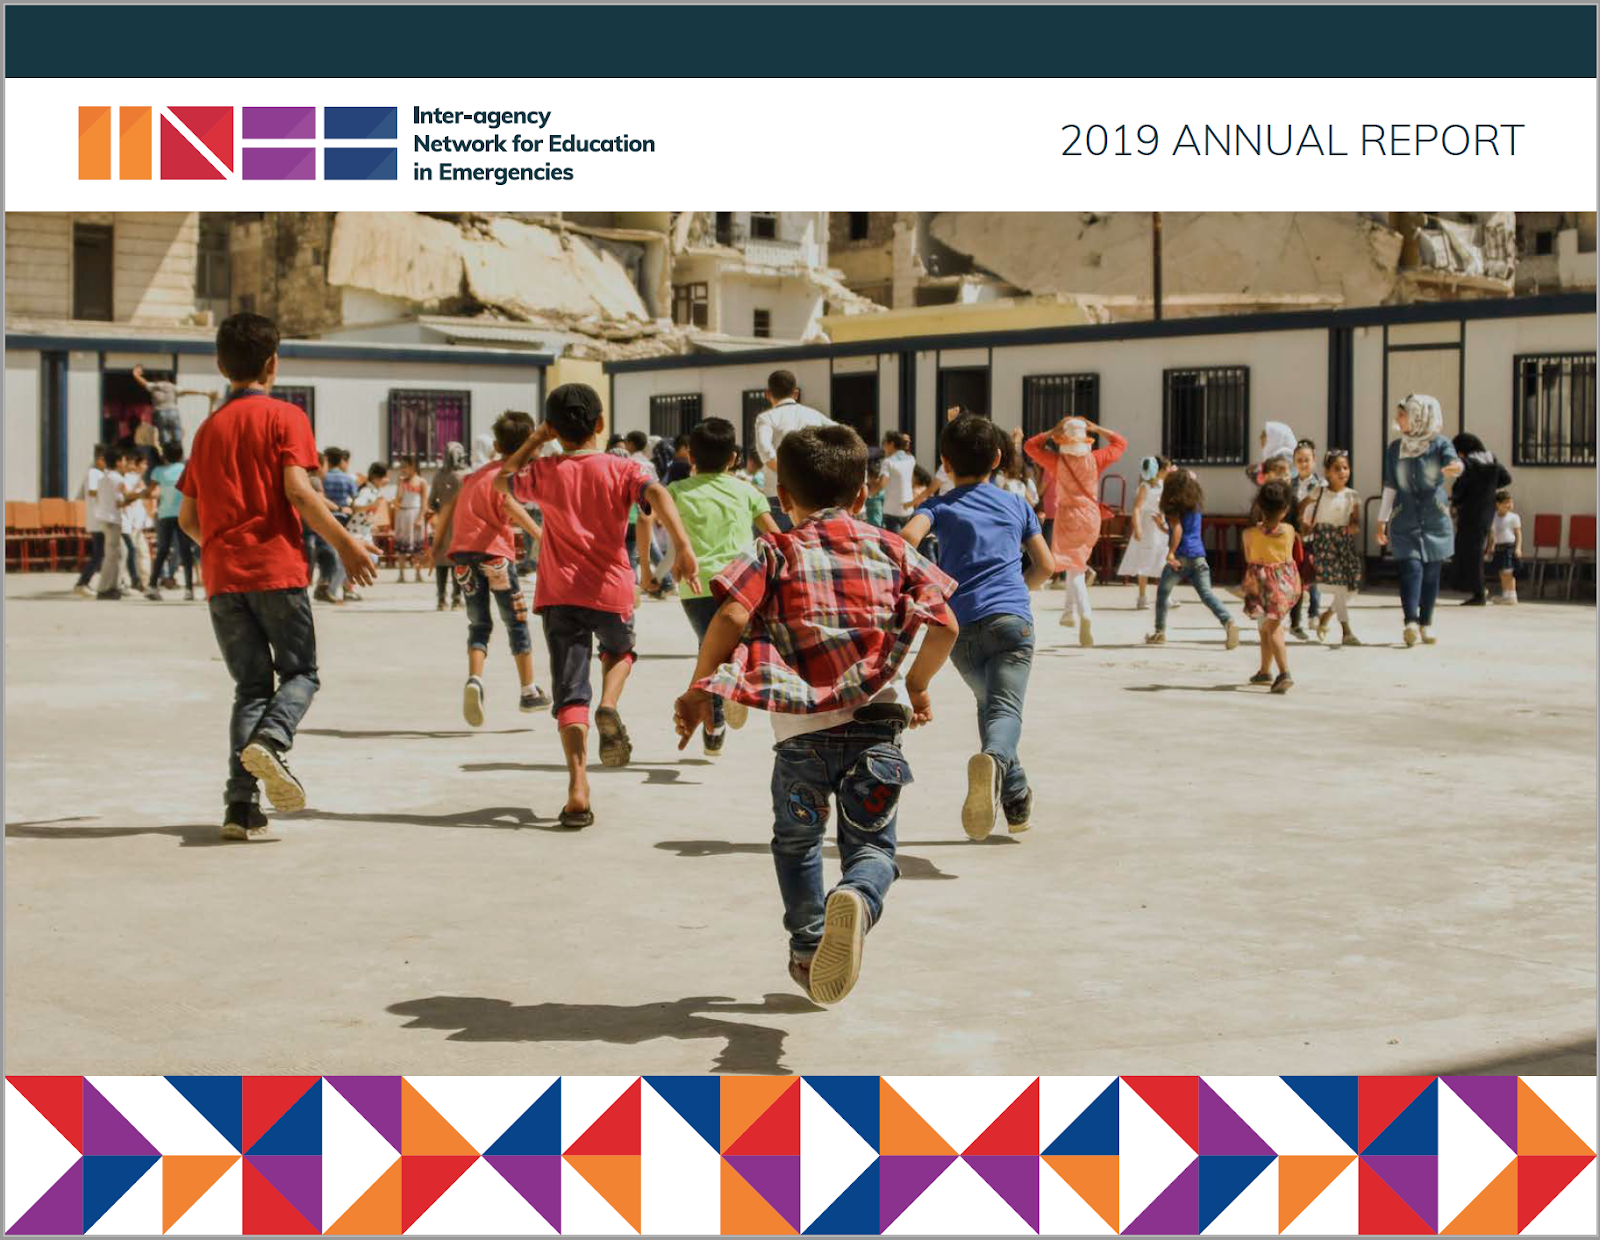 INEE 2019 Annual Report cover